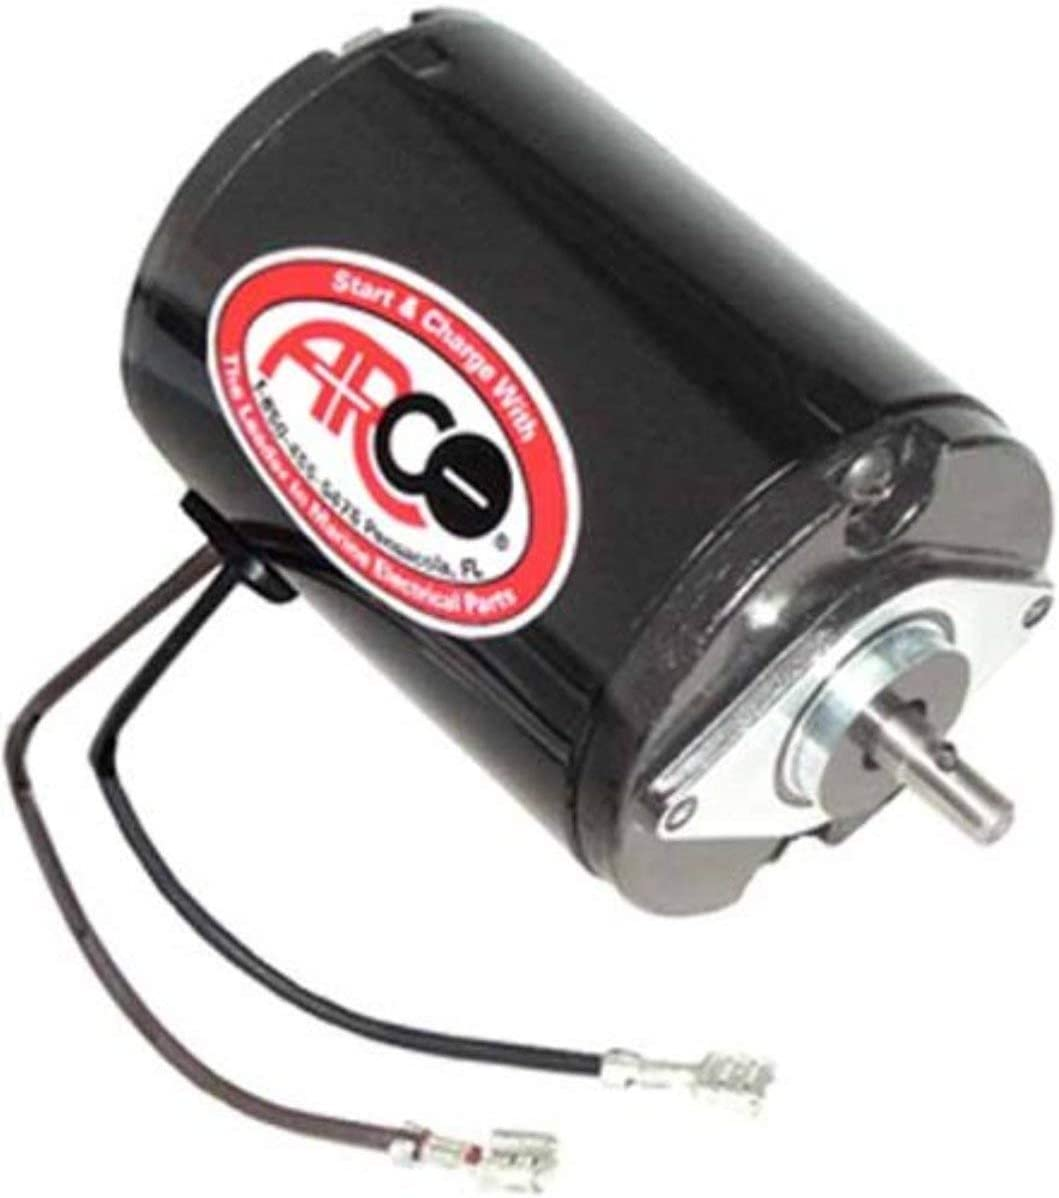 Amazon.com : Arco Volvo-Penta Replacement Power Tilt and Trim Motor 6223 :  Outboard Motors : Sports & Outdoors   Volvo Penta 270 Trim Wiring Diagram      Amazon.com